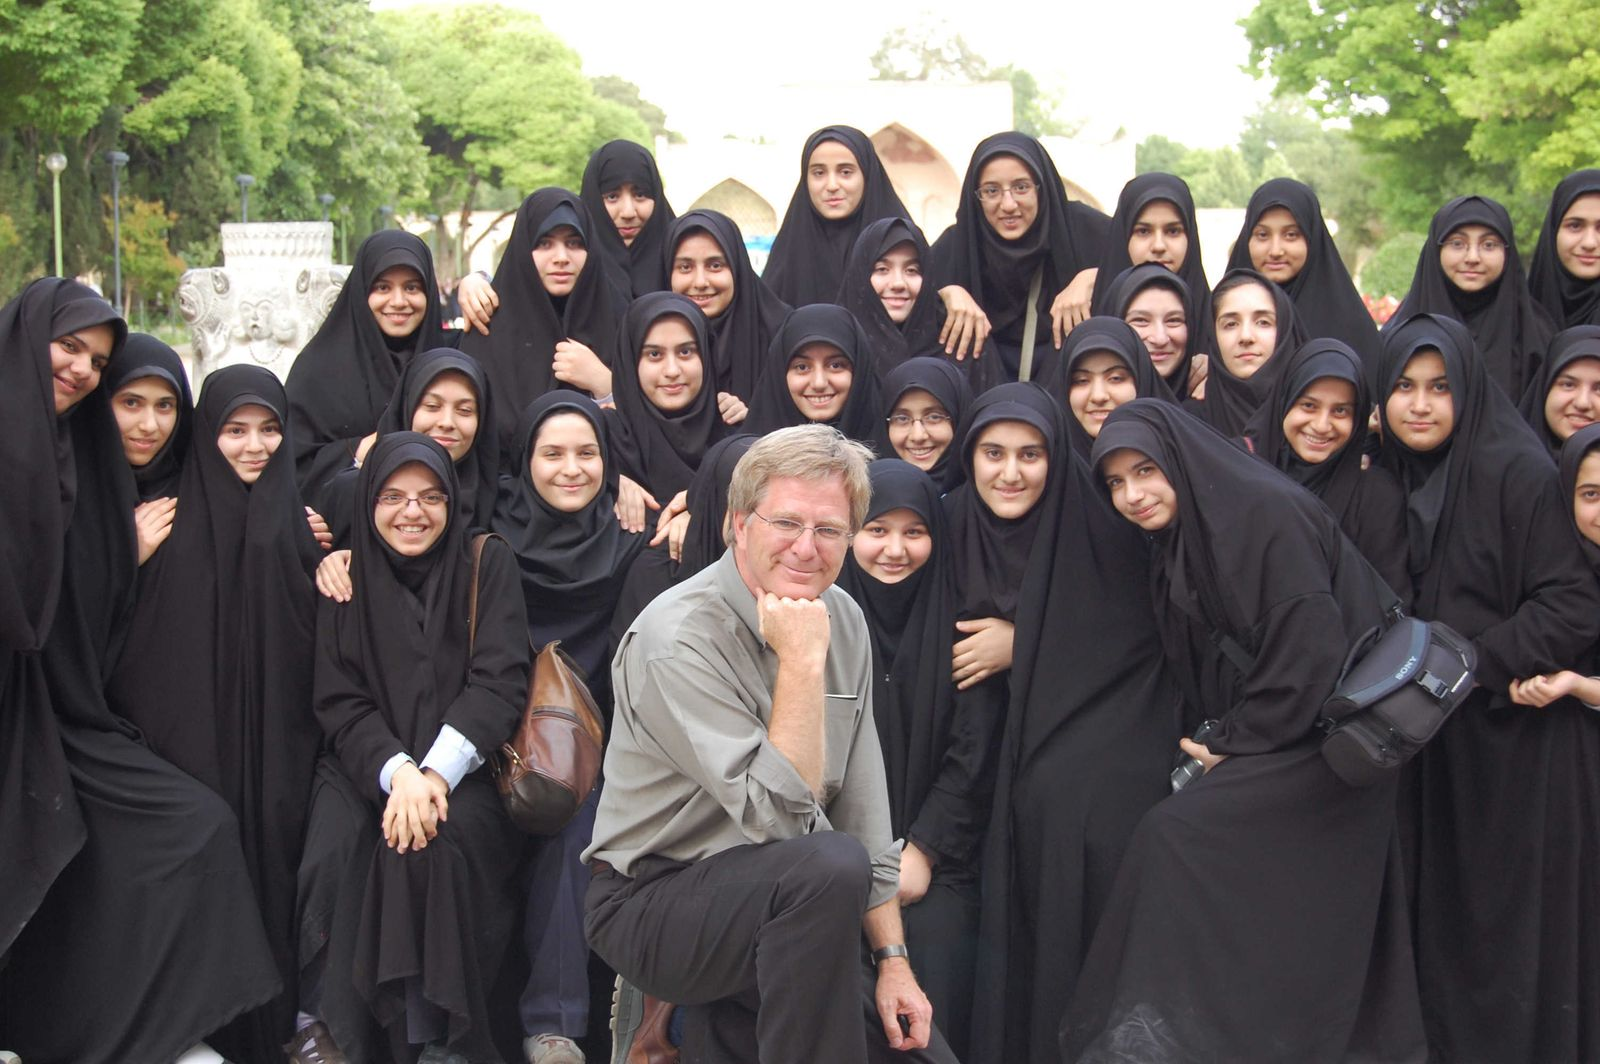 Ask Your Travel Questions From Travel Star Rick Steves At His Fireside Chat with GetSetUp